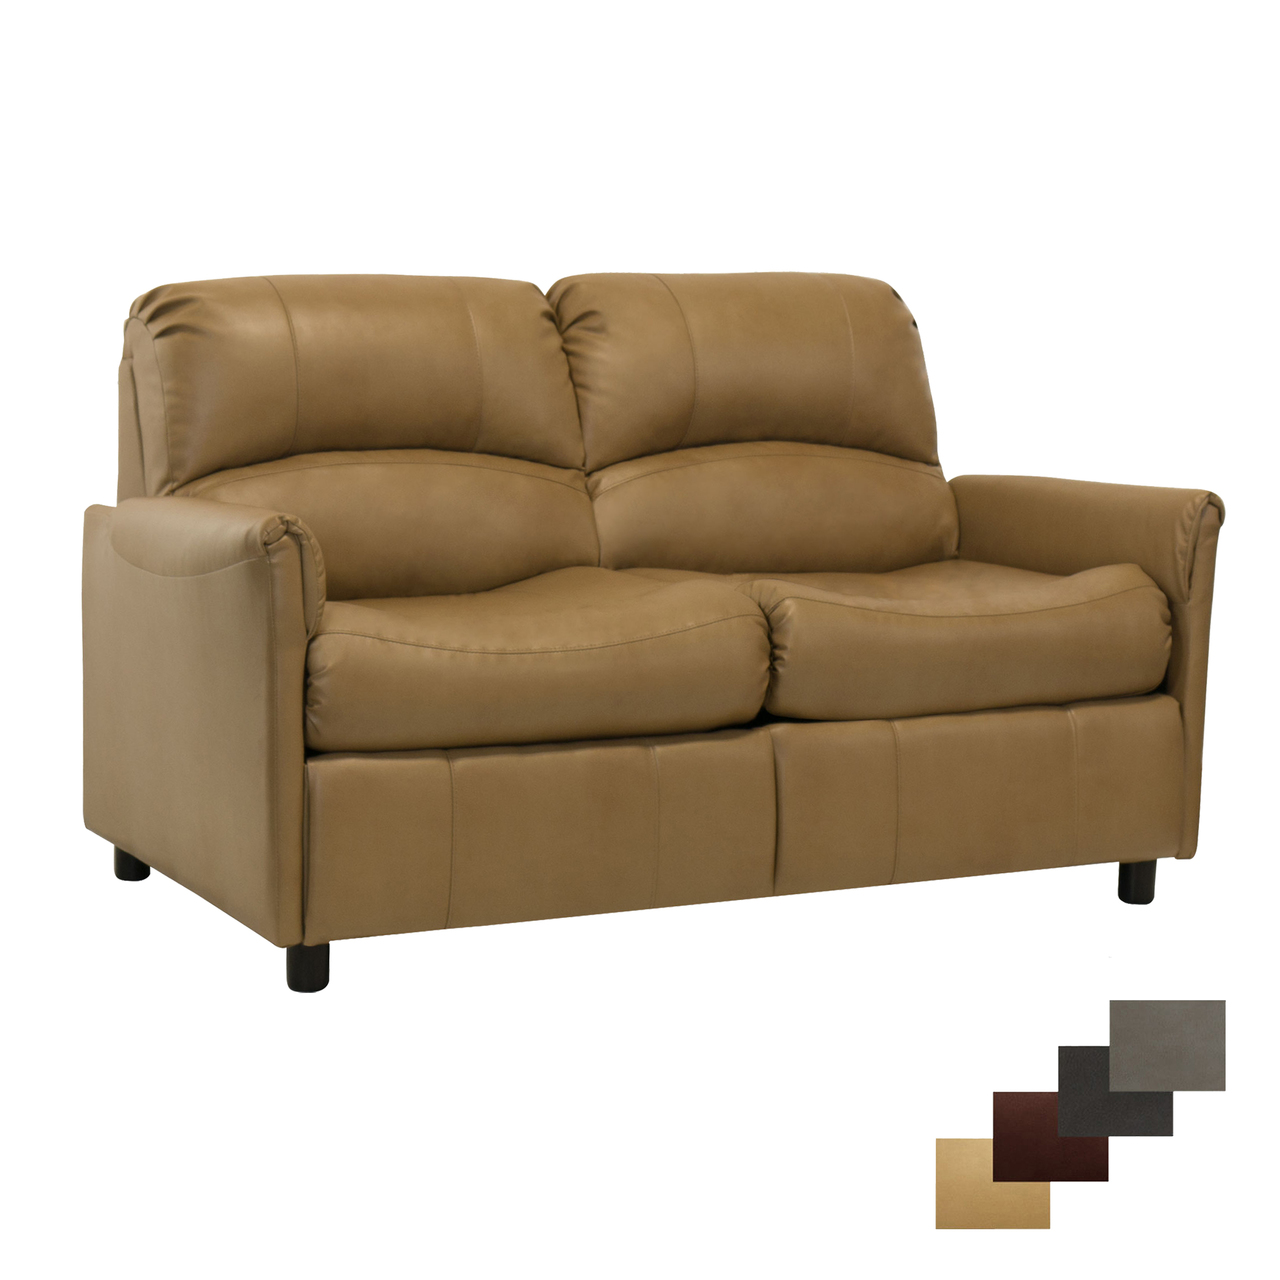 Outstanding Recpro Charles 60 Rv Sleeper Sofa W Hide A Bed Beatyapartments Chair Design Images Beatyapartmentscom